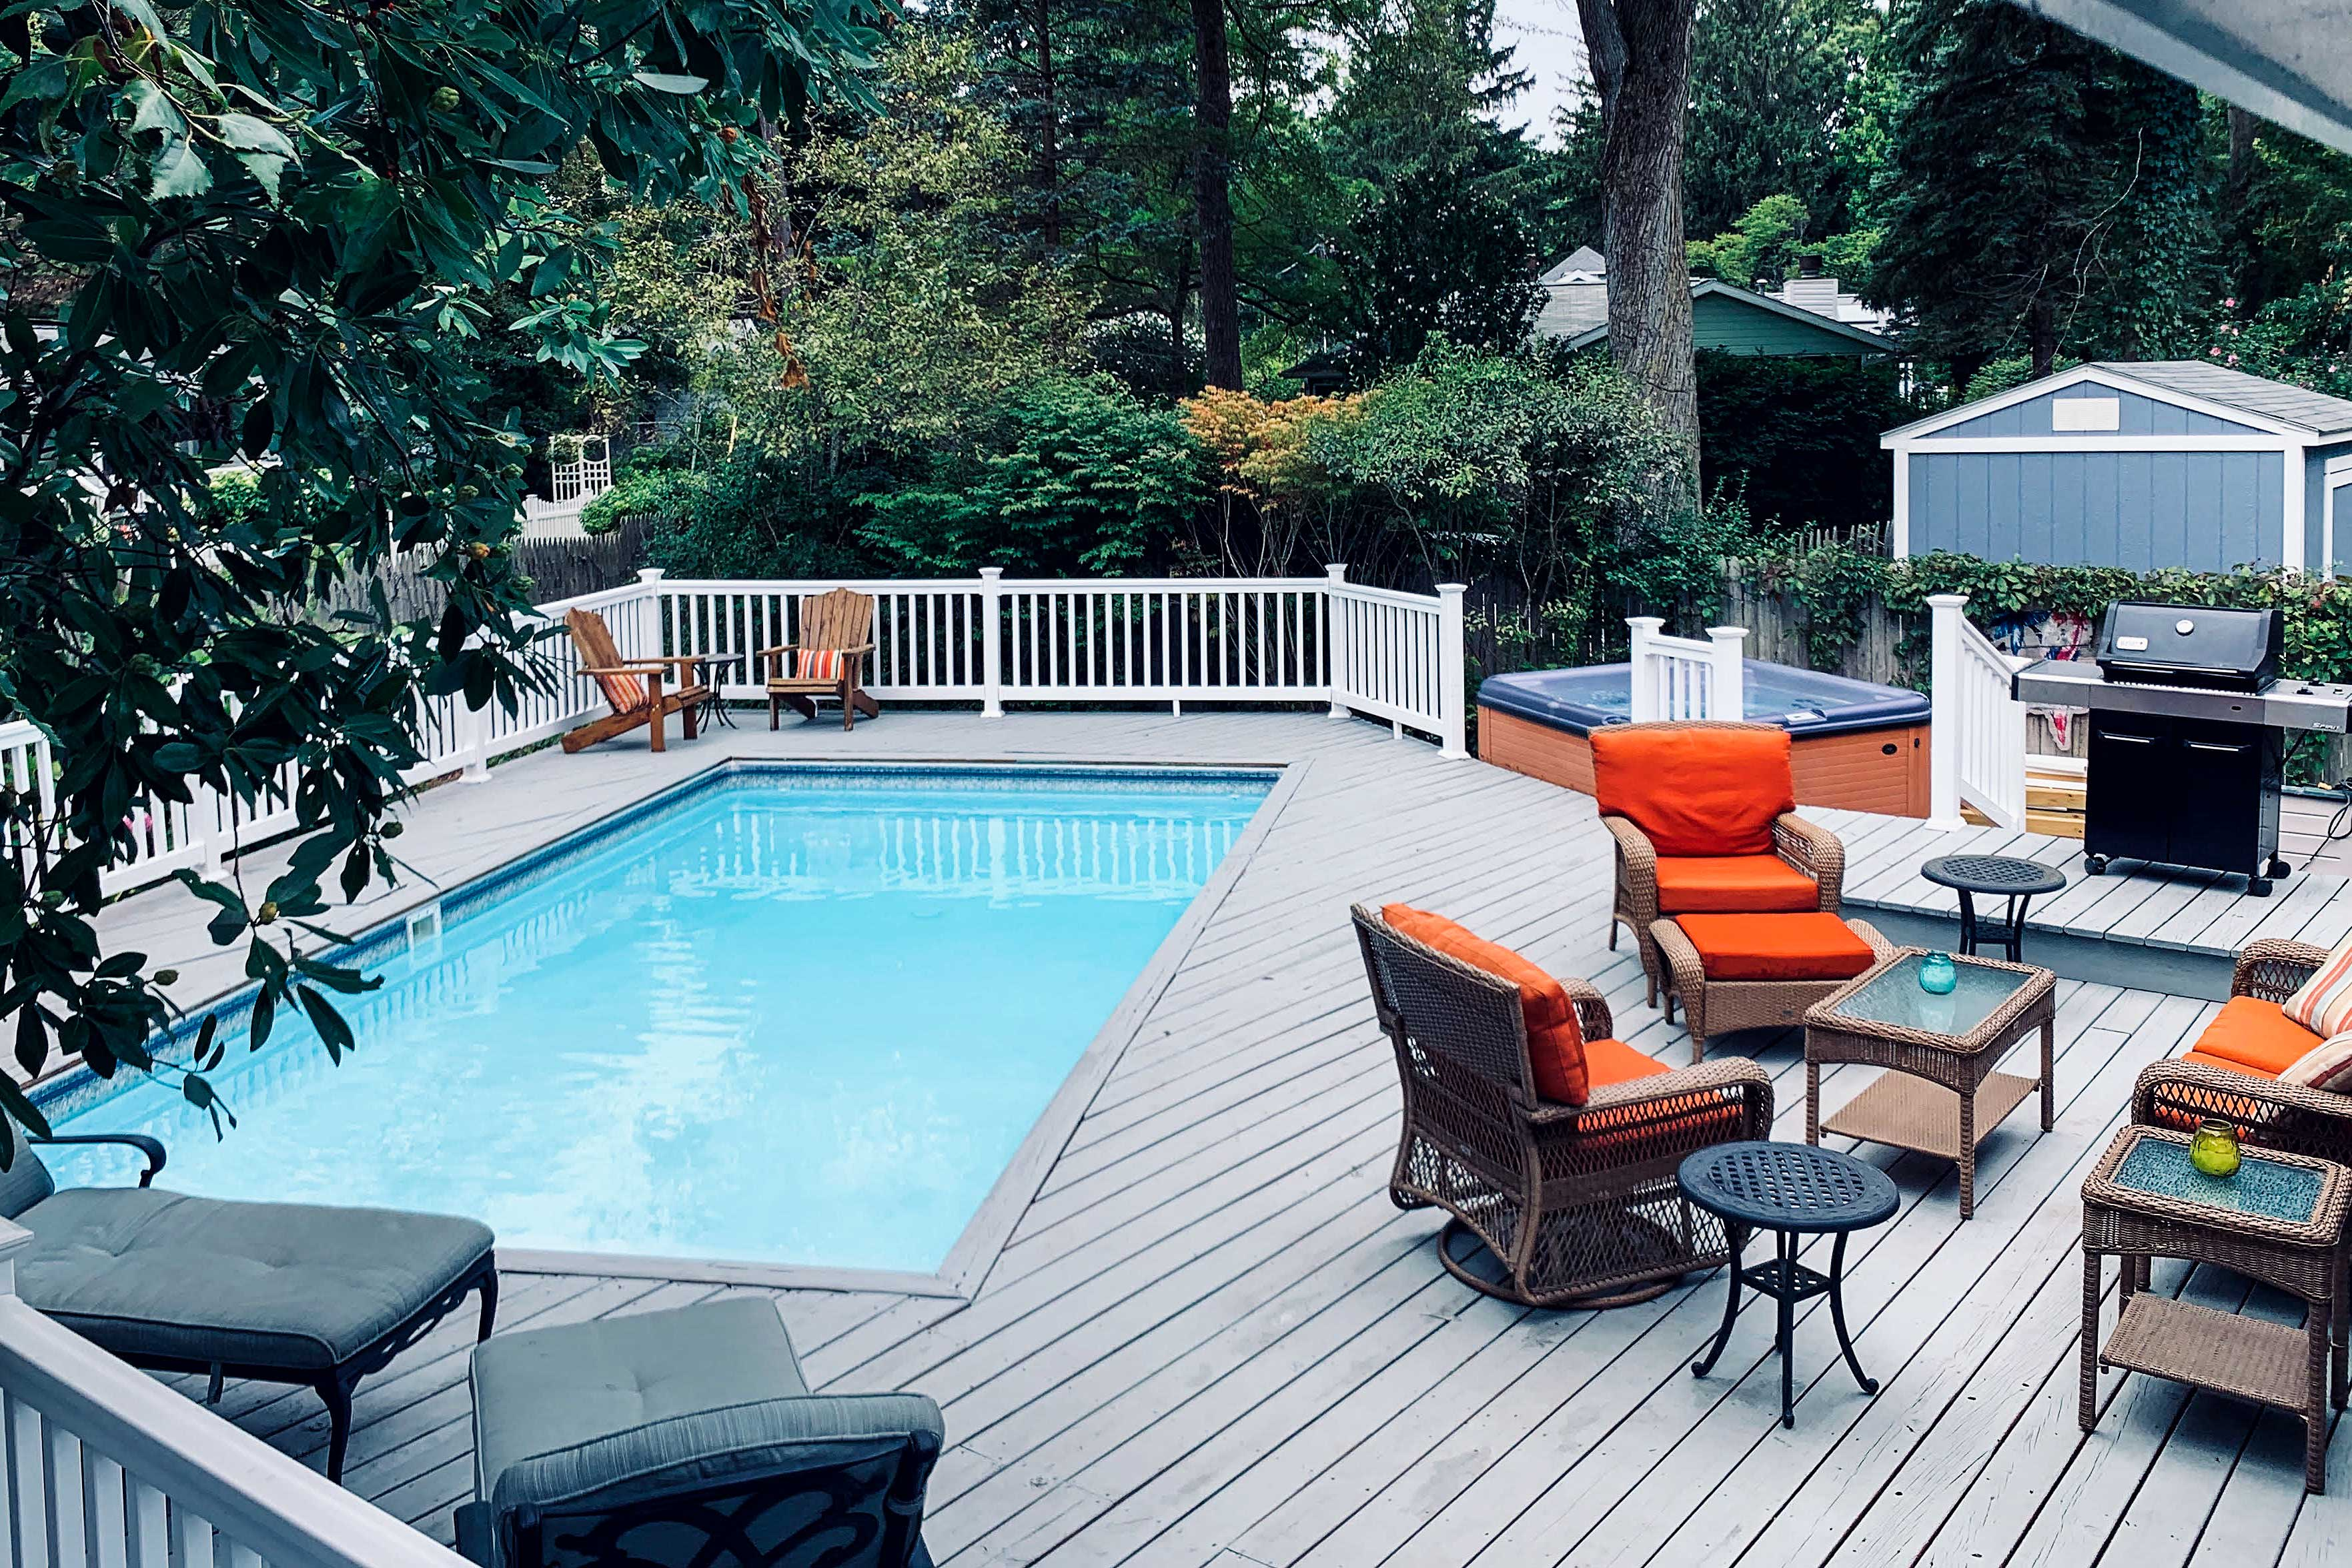 Barbecue a zesty meal, jump in the pool or soak in the hot tub!